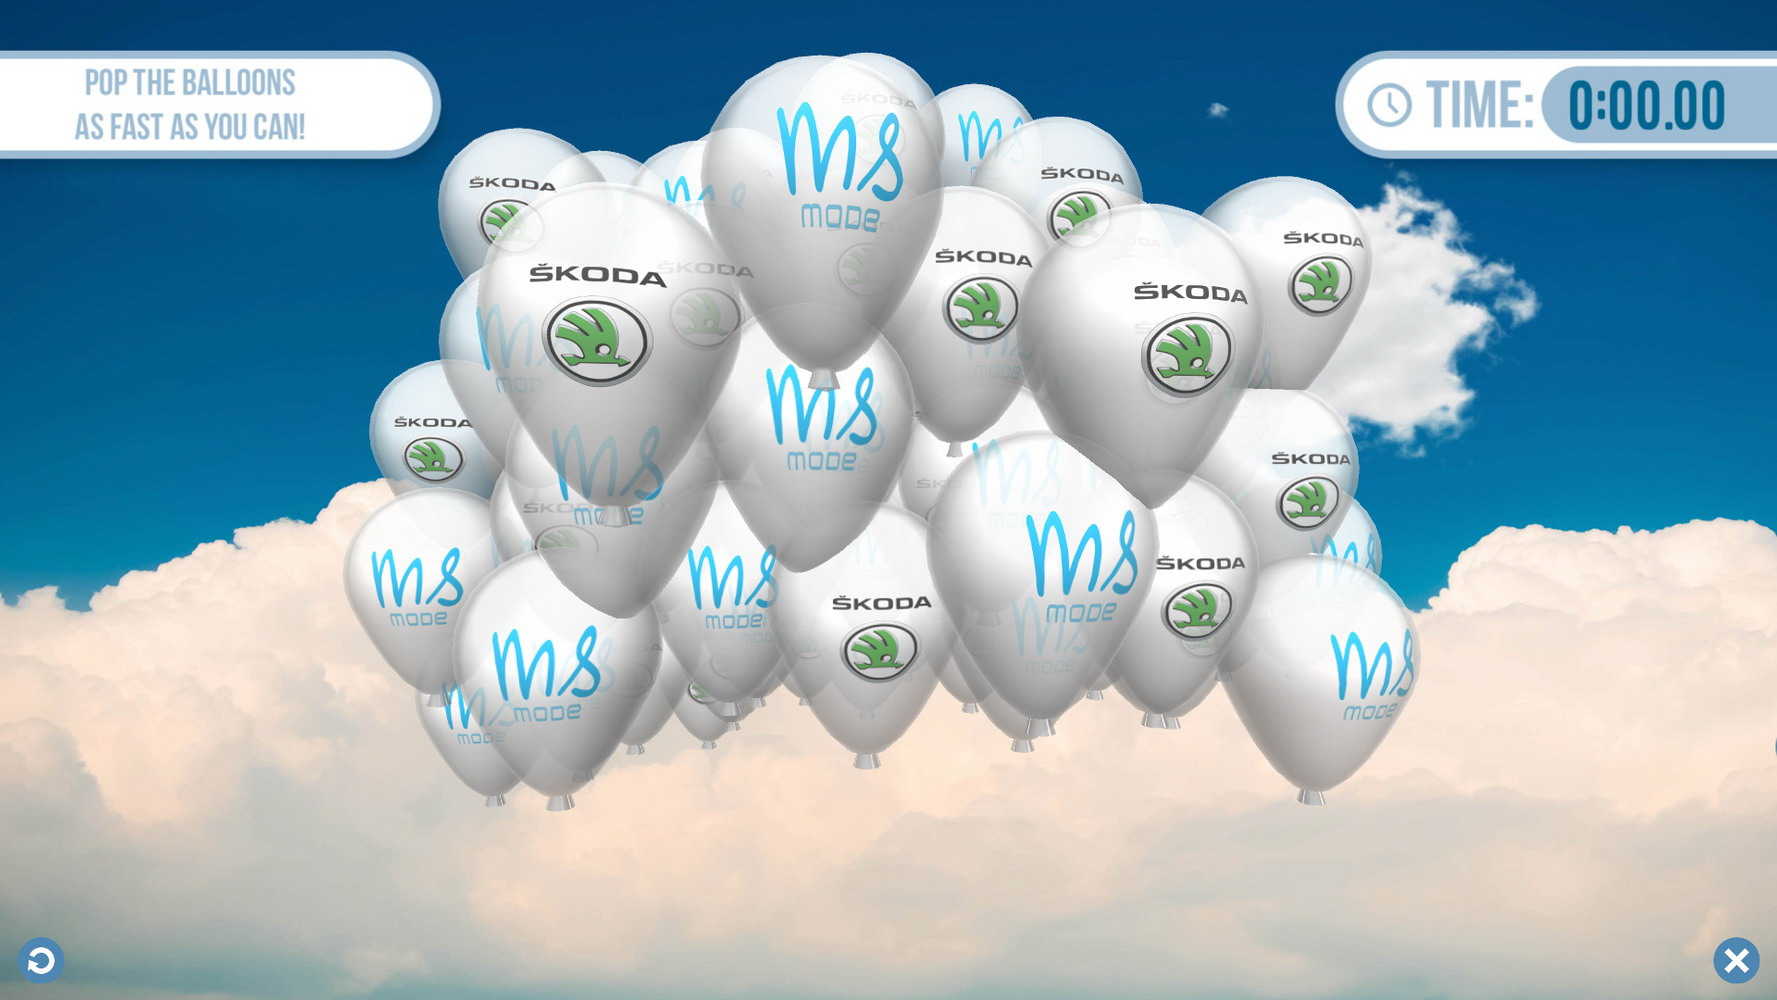 SpecialSolution_Balloongame_M&S (2)